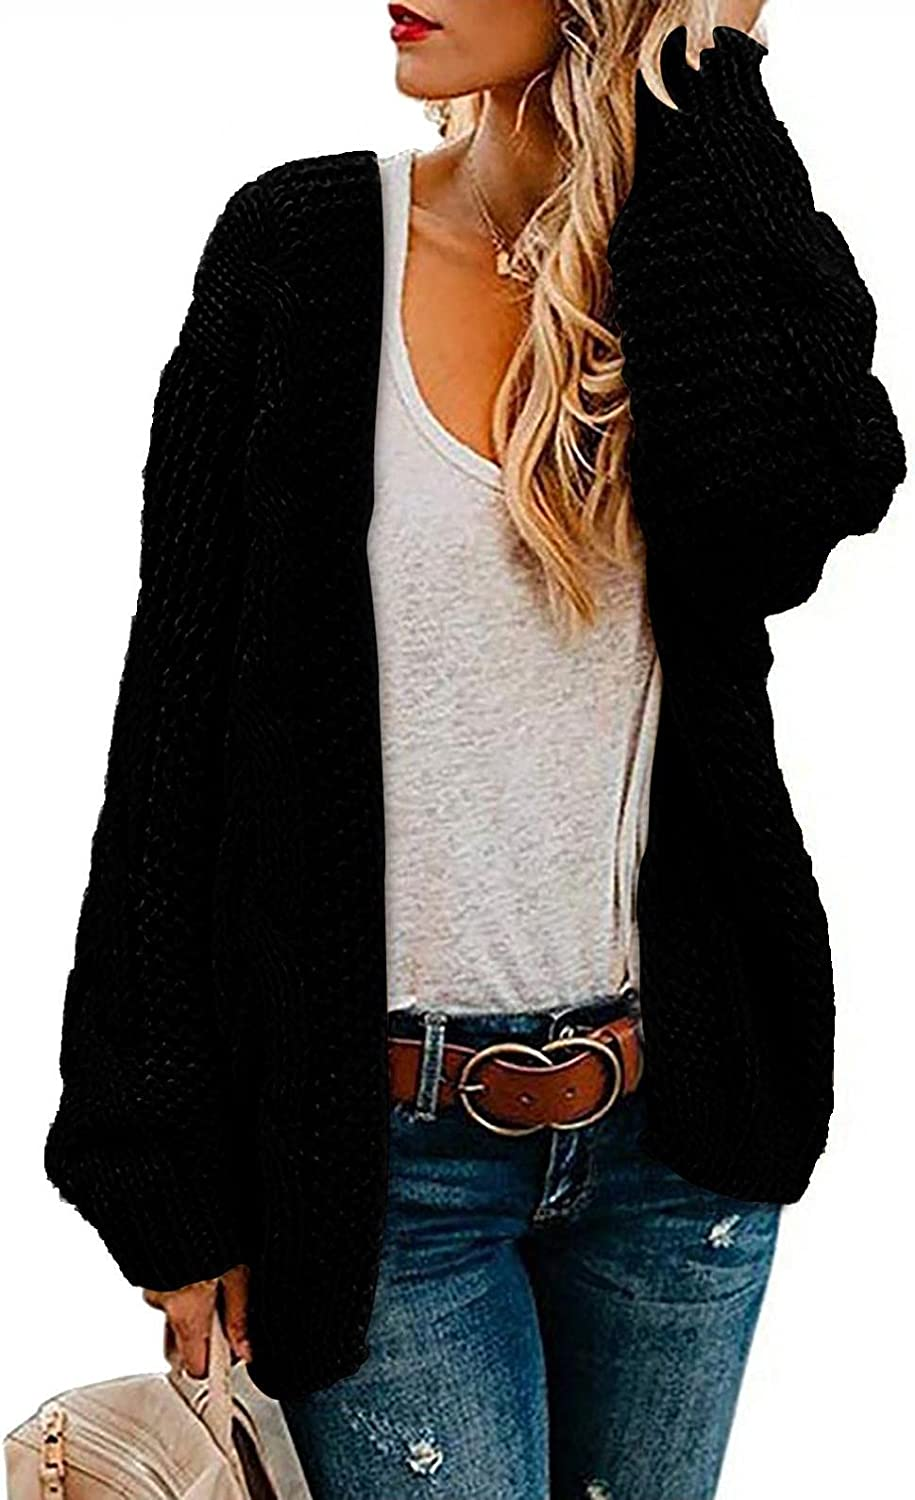 Women Loose Fit Lightweight Sweater Cardigans Jackets Casual Soft Loose Chunky Knit Open Front Cardigans Plus Size